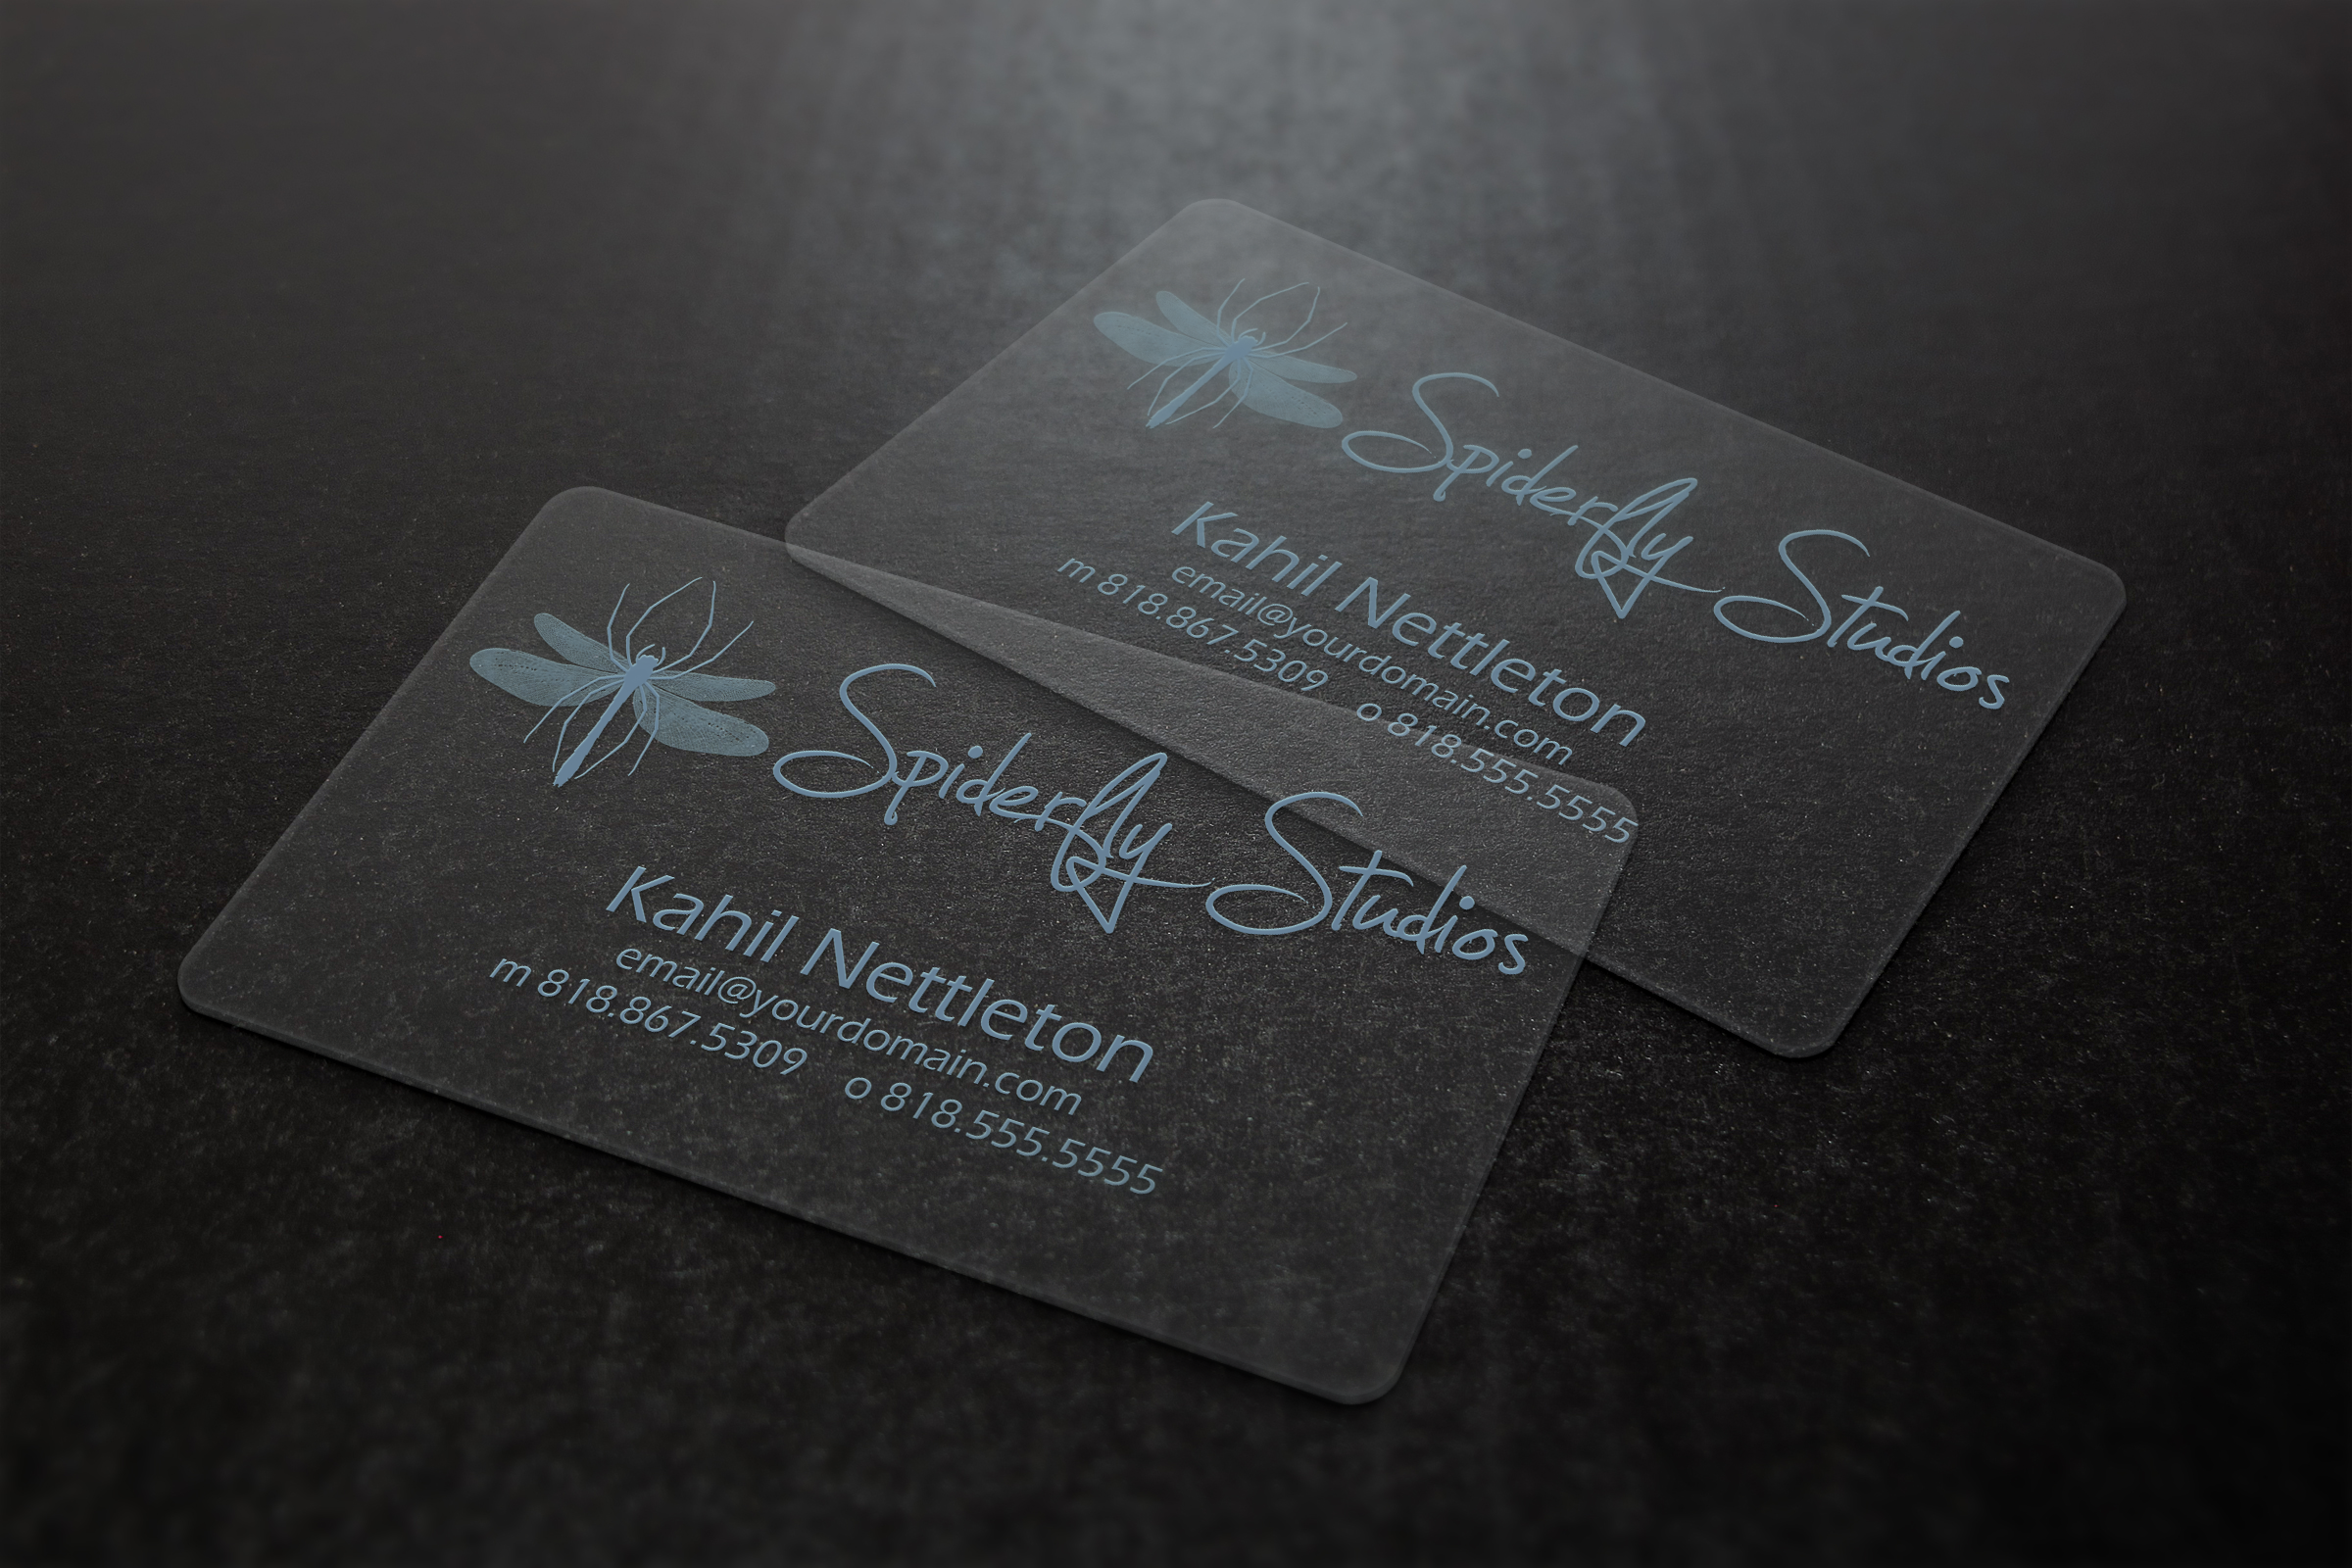 Plastic Business Cards Mockup Image collections - Card Design And ...